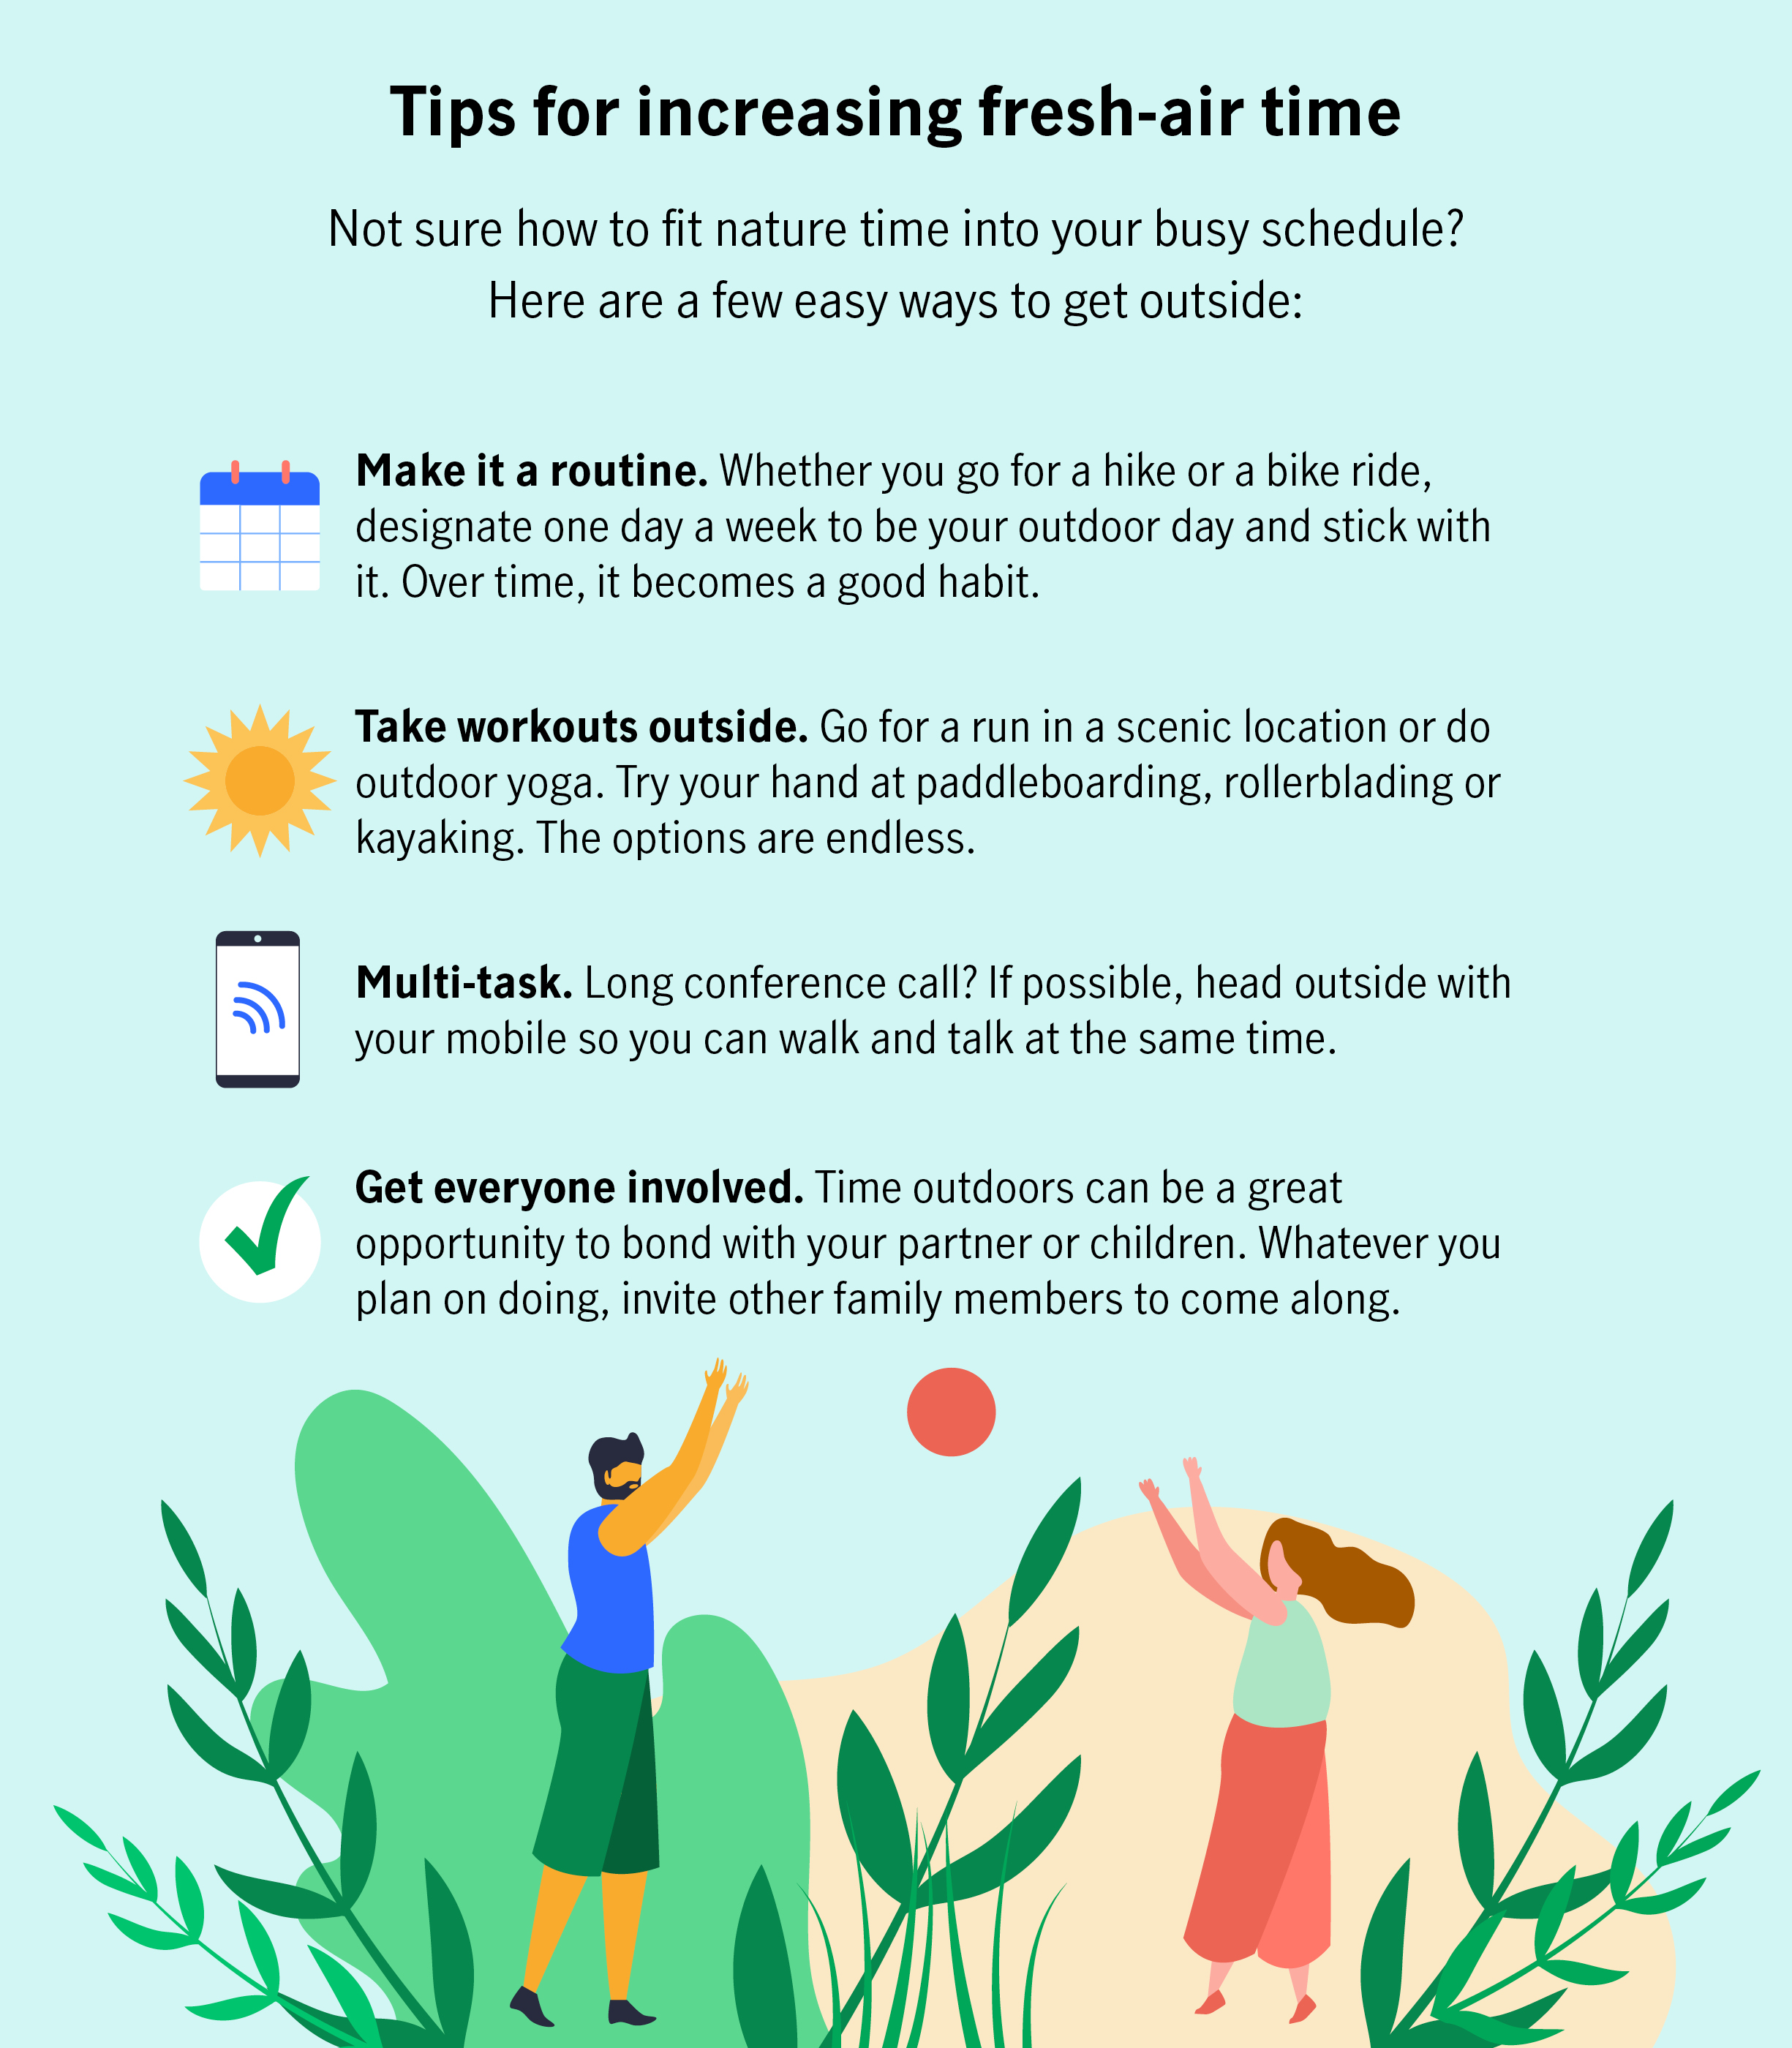 Tips for increasing fresh-air time  Not sure how to fit nature time into your busy schedule? Here are a few easy ways to get outside:  Make it a routine. Whether you go for a hike or a bike ride, designate one day a week to be your outdoor day and stick with it. Over time, it becomes a good habit.  Take workouts outside. Go for a run in a scenic location or do outdoor yoga. Try your hand at paddleboarding, rollerblading or kayaking. The options are endless.  Multi-task. Long conference call? If possible, head outside with your mobile so you can walk and talk at the same time.  Get everyone involved. Time outdoors can be a great opportunity to bond with your partner or children. Whatever you plan on doing, invite other family members to come along.